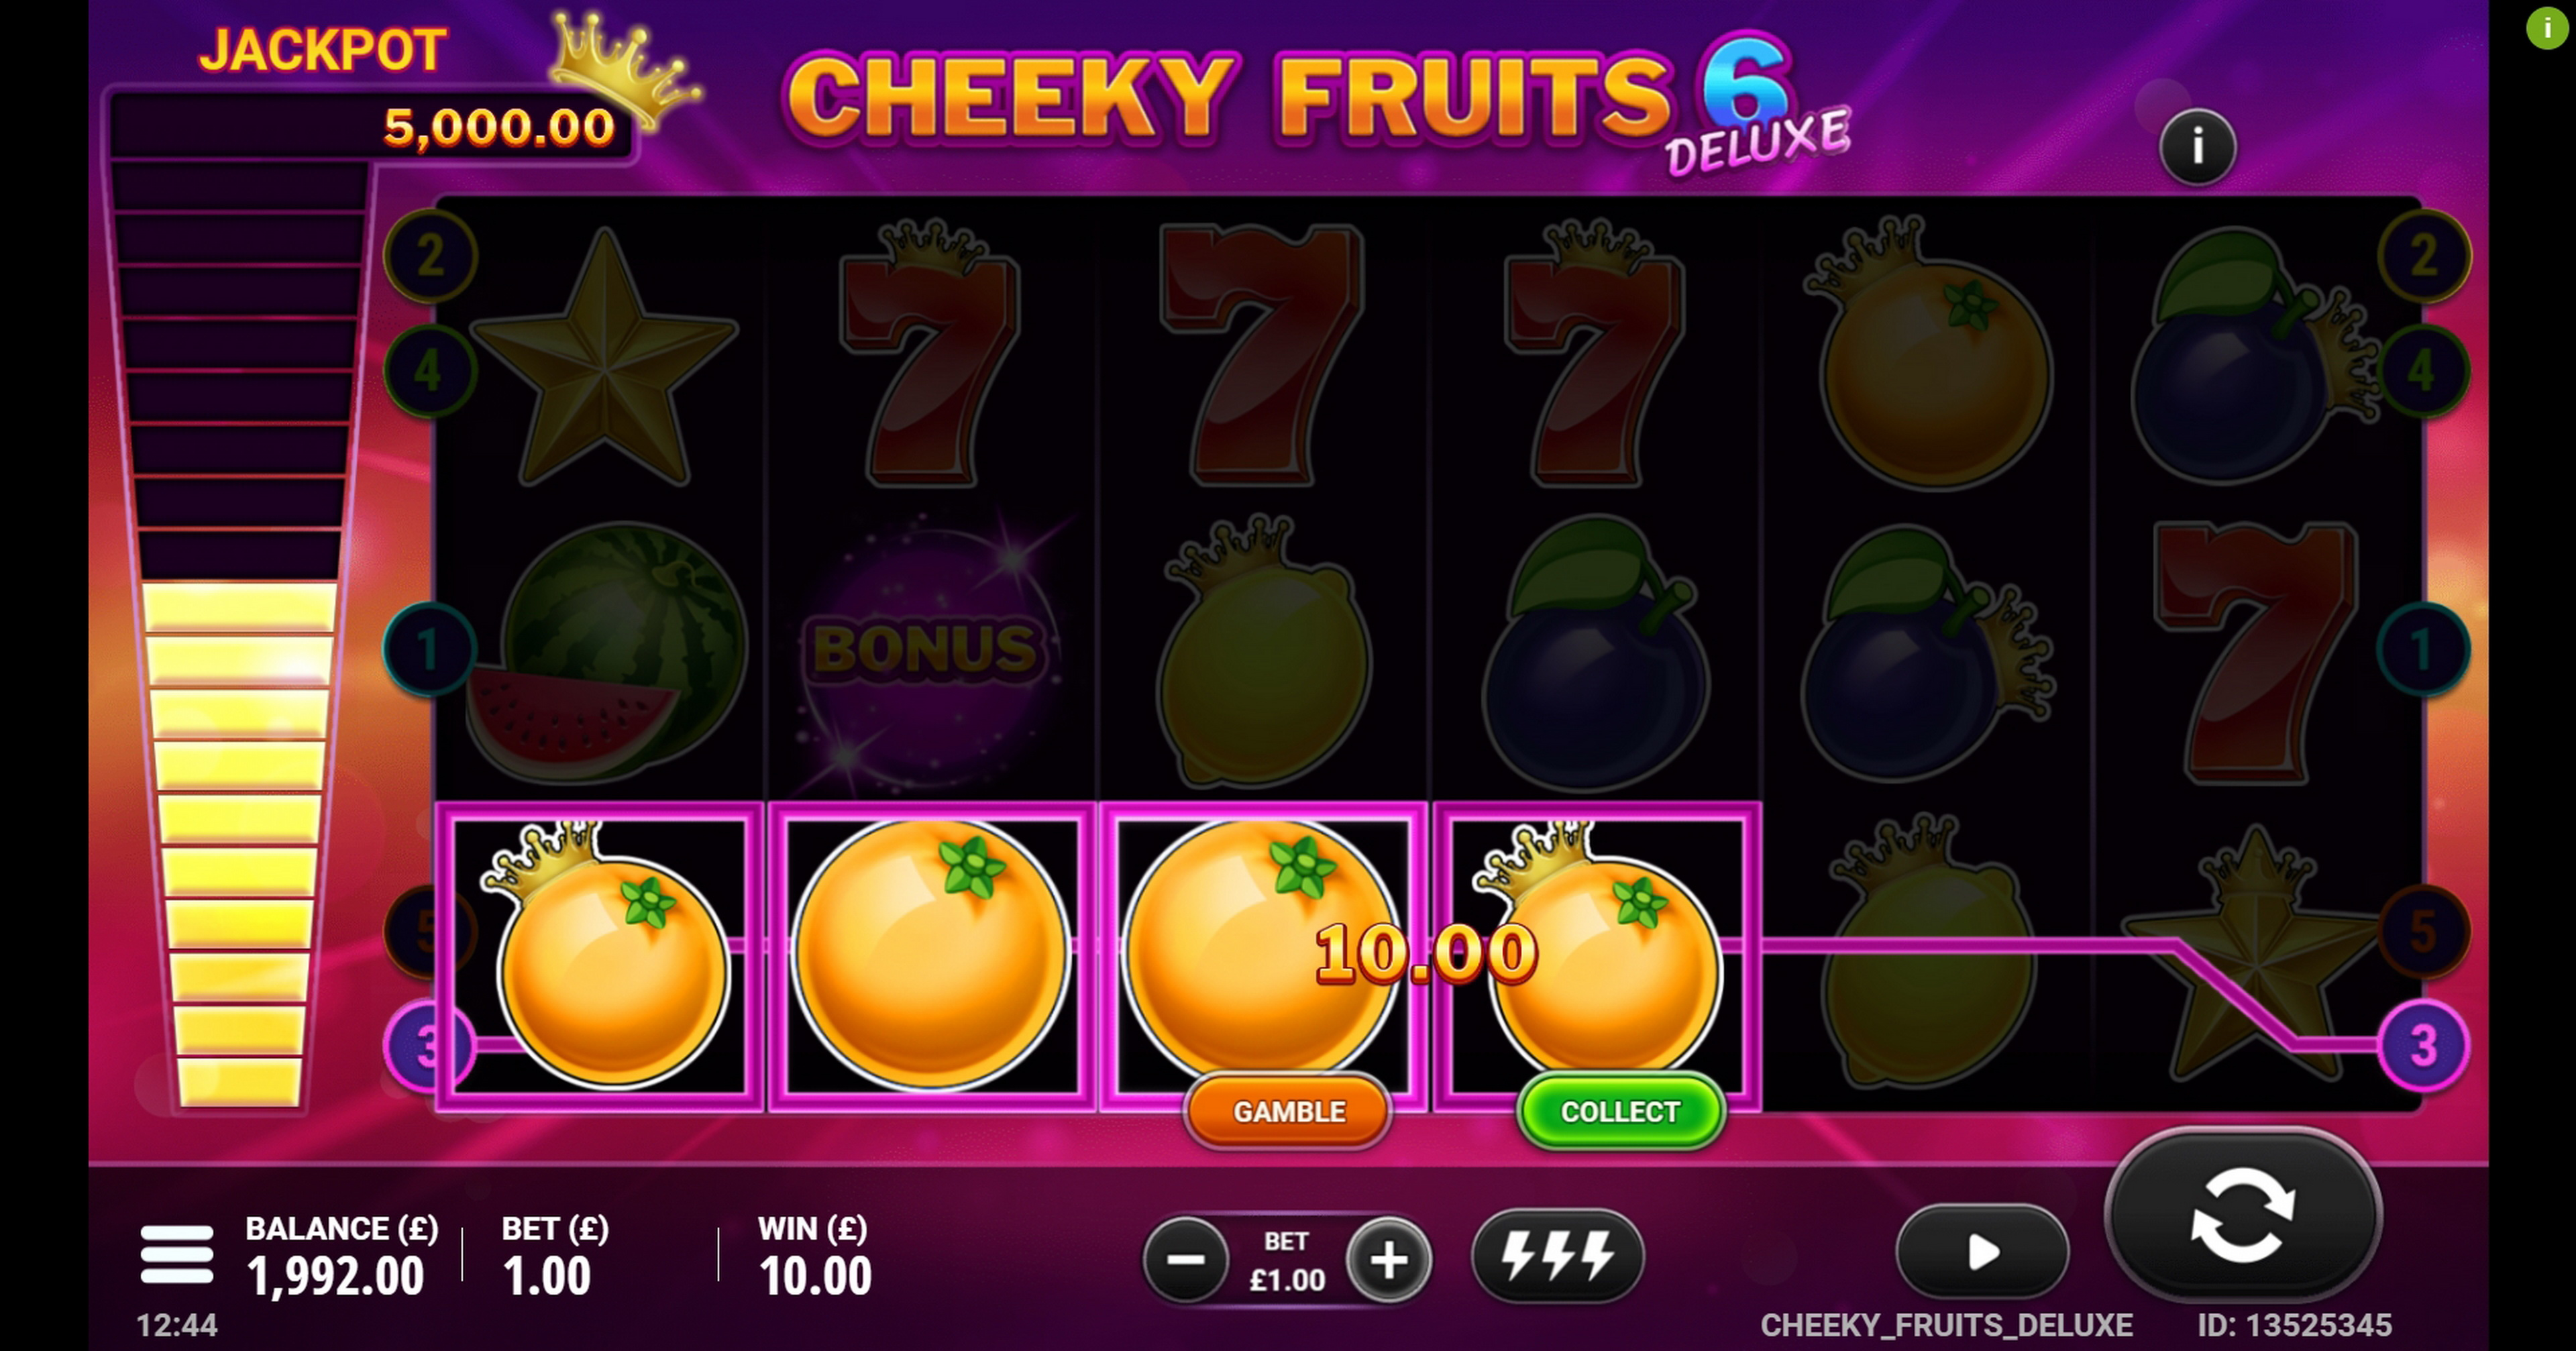 Win Money in Cheeky Fruits 6 Deluxe Free Slot Game by Gluck Games